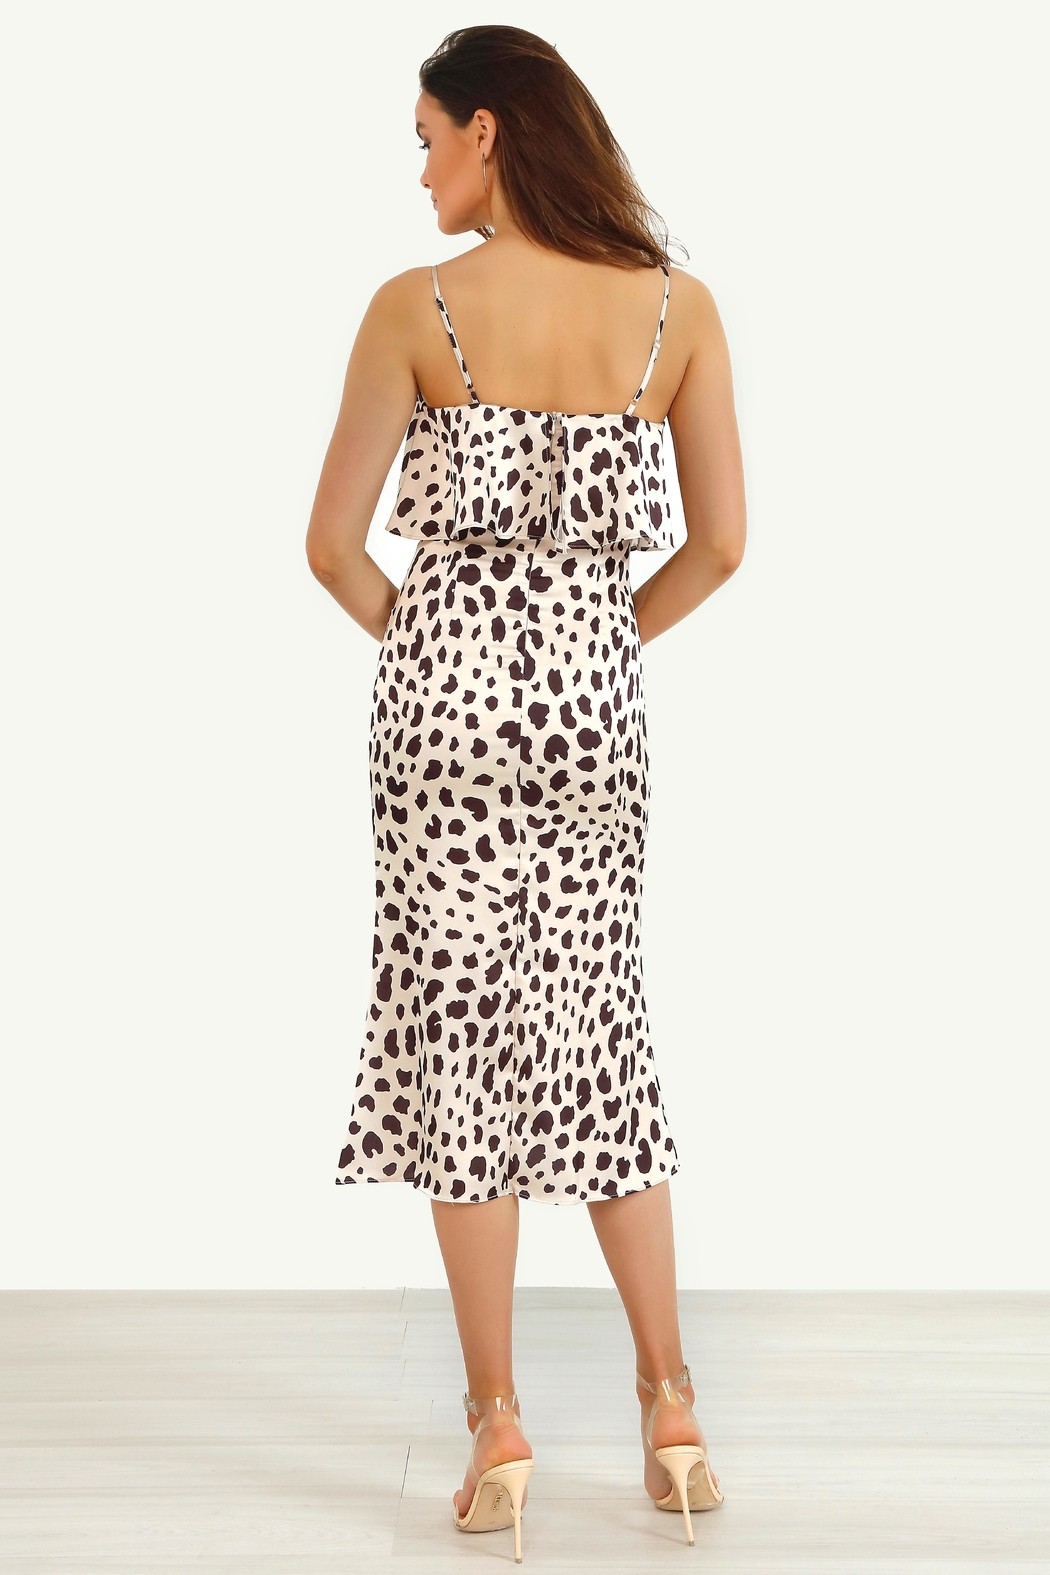 Urban Touch Animal Leopard Print Layered Satin Slip Midi Dress - Side Cropped Image